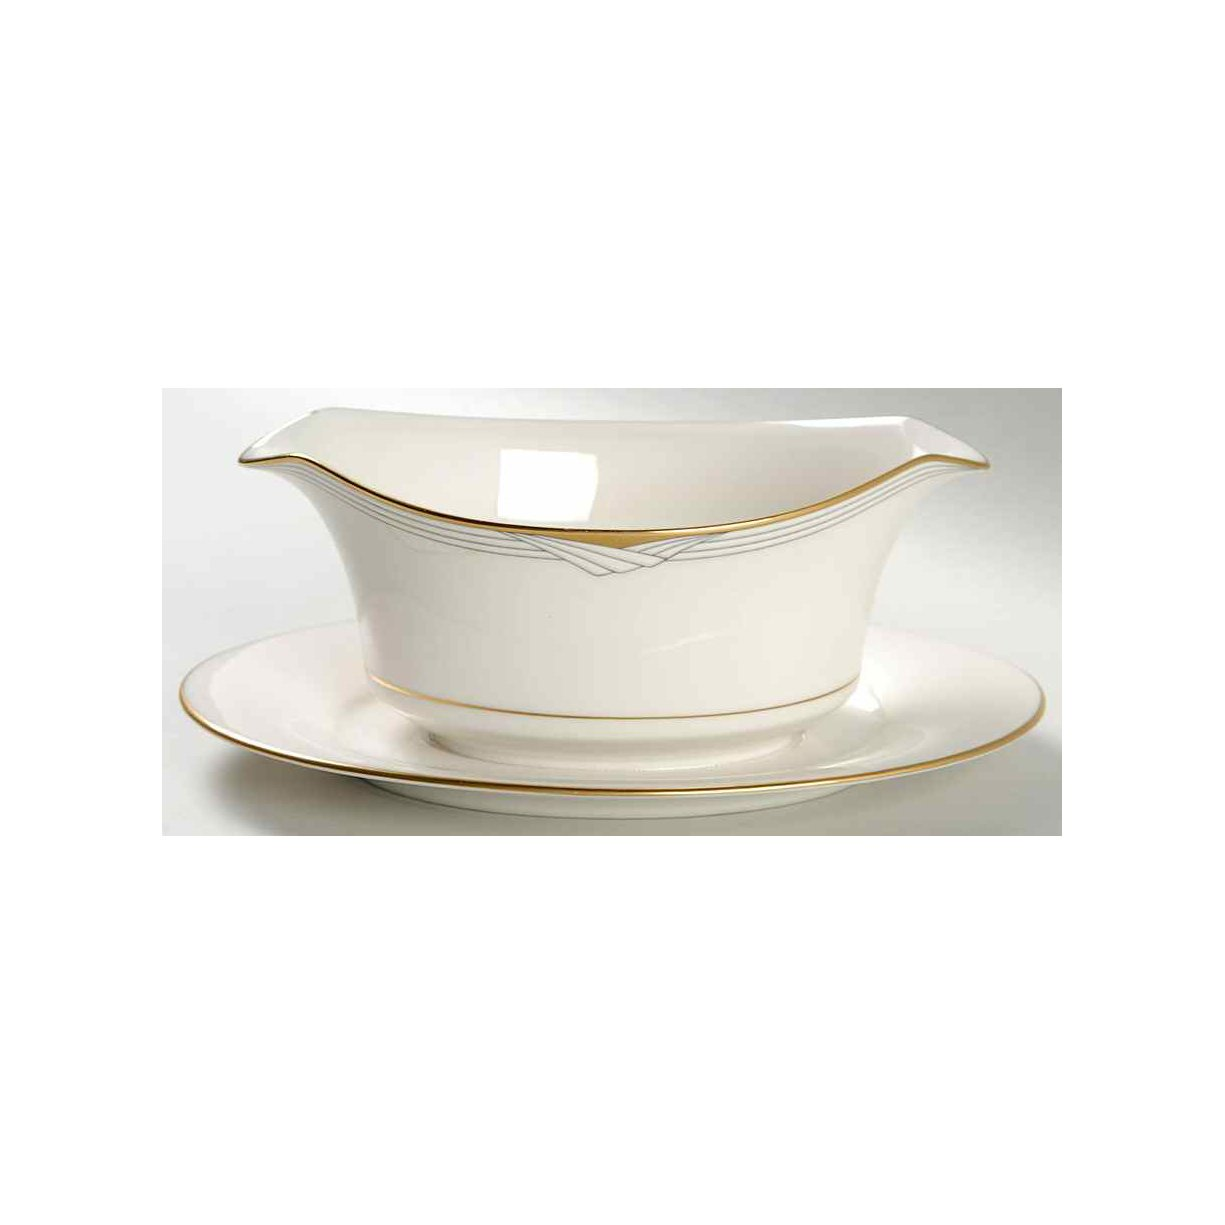 Noritake China Golden Cove Gravy Boat by Noritake (Image #1)